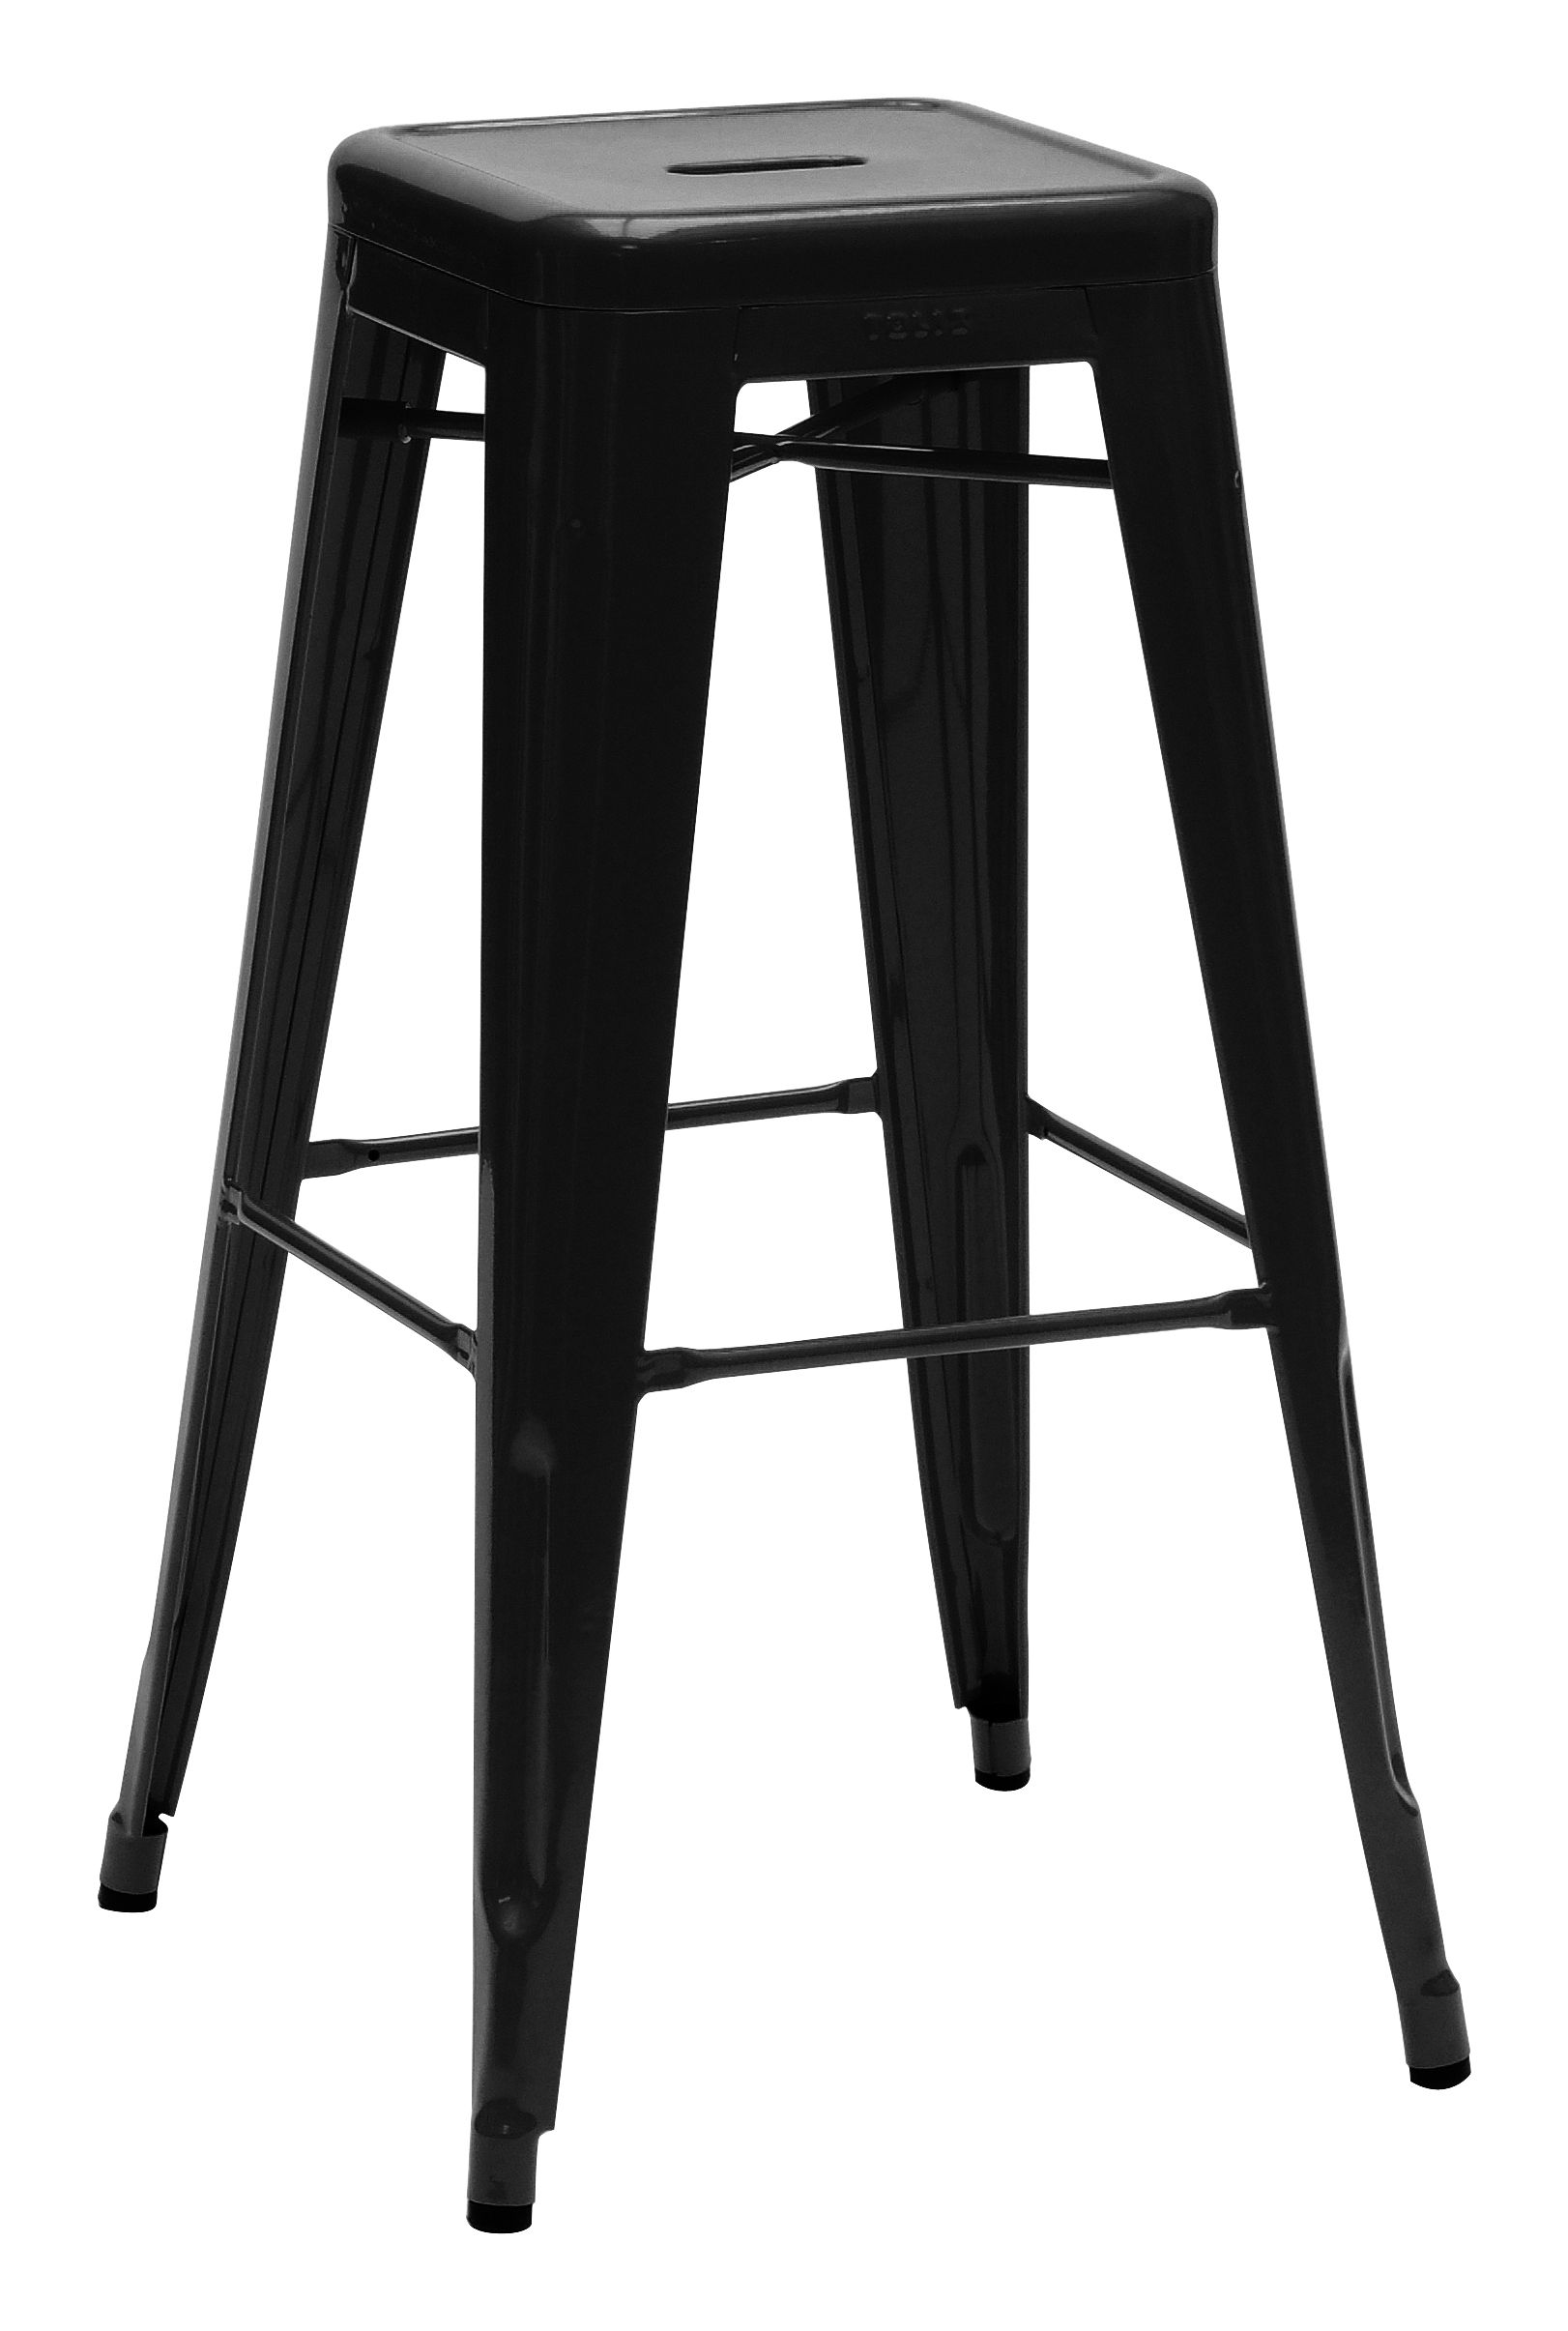 tabouret de bar h h 75 cm couleur brillante noir brillant tolix made in design. Black Bedroom Furniture Sets. Home Design Ideas